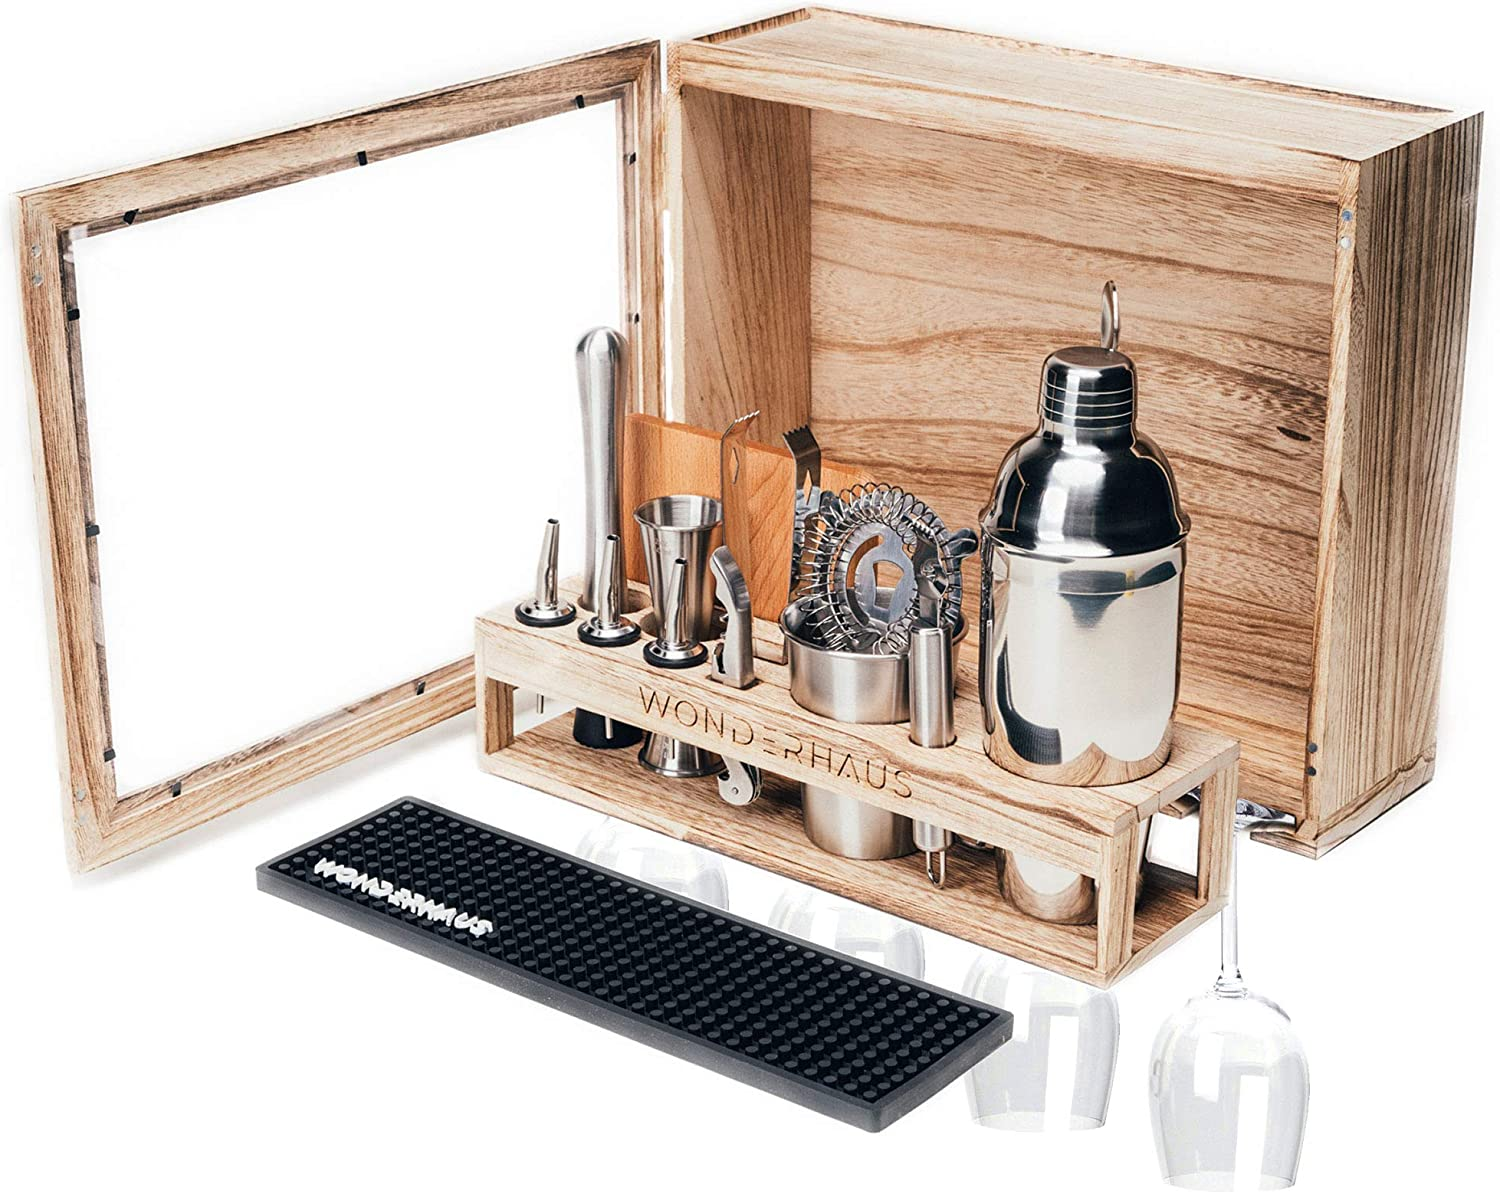 Mixology Bartending kit with stand, Barbox is Stylish Rustic 17-Piece Stainless Steel Bar Tools Cocktail Set, Glass Rack, Elegant Home Wall Decor Mini Bar